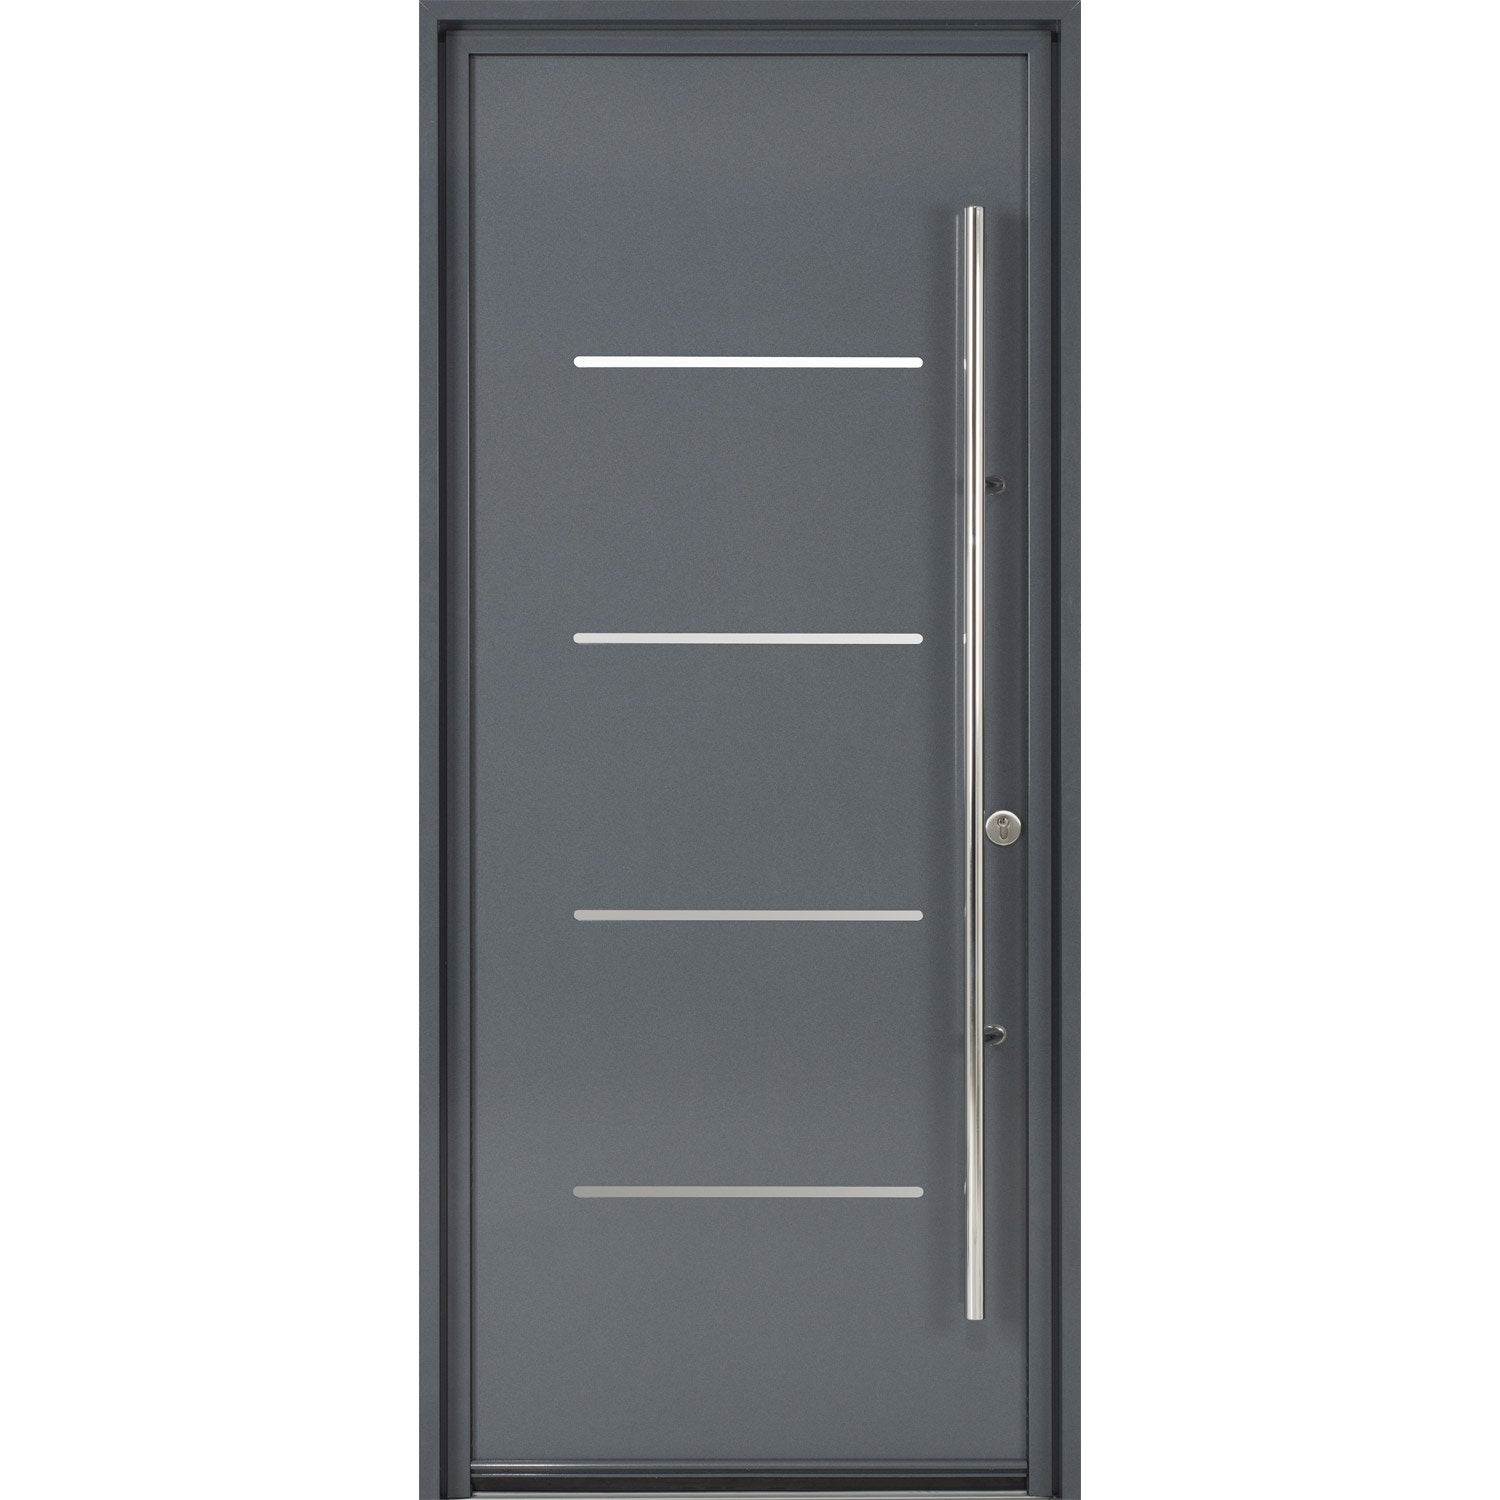 Porte d 39 entr e sur mesure en aluminium strate excellence for Leroy merlin porte garage sur mesure